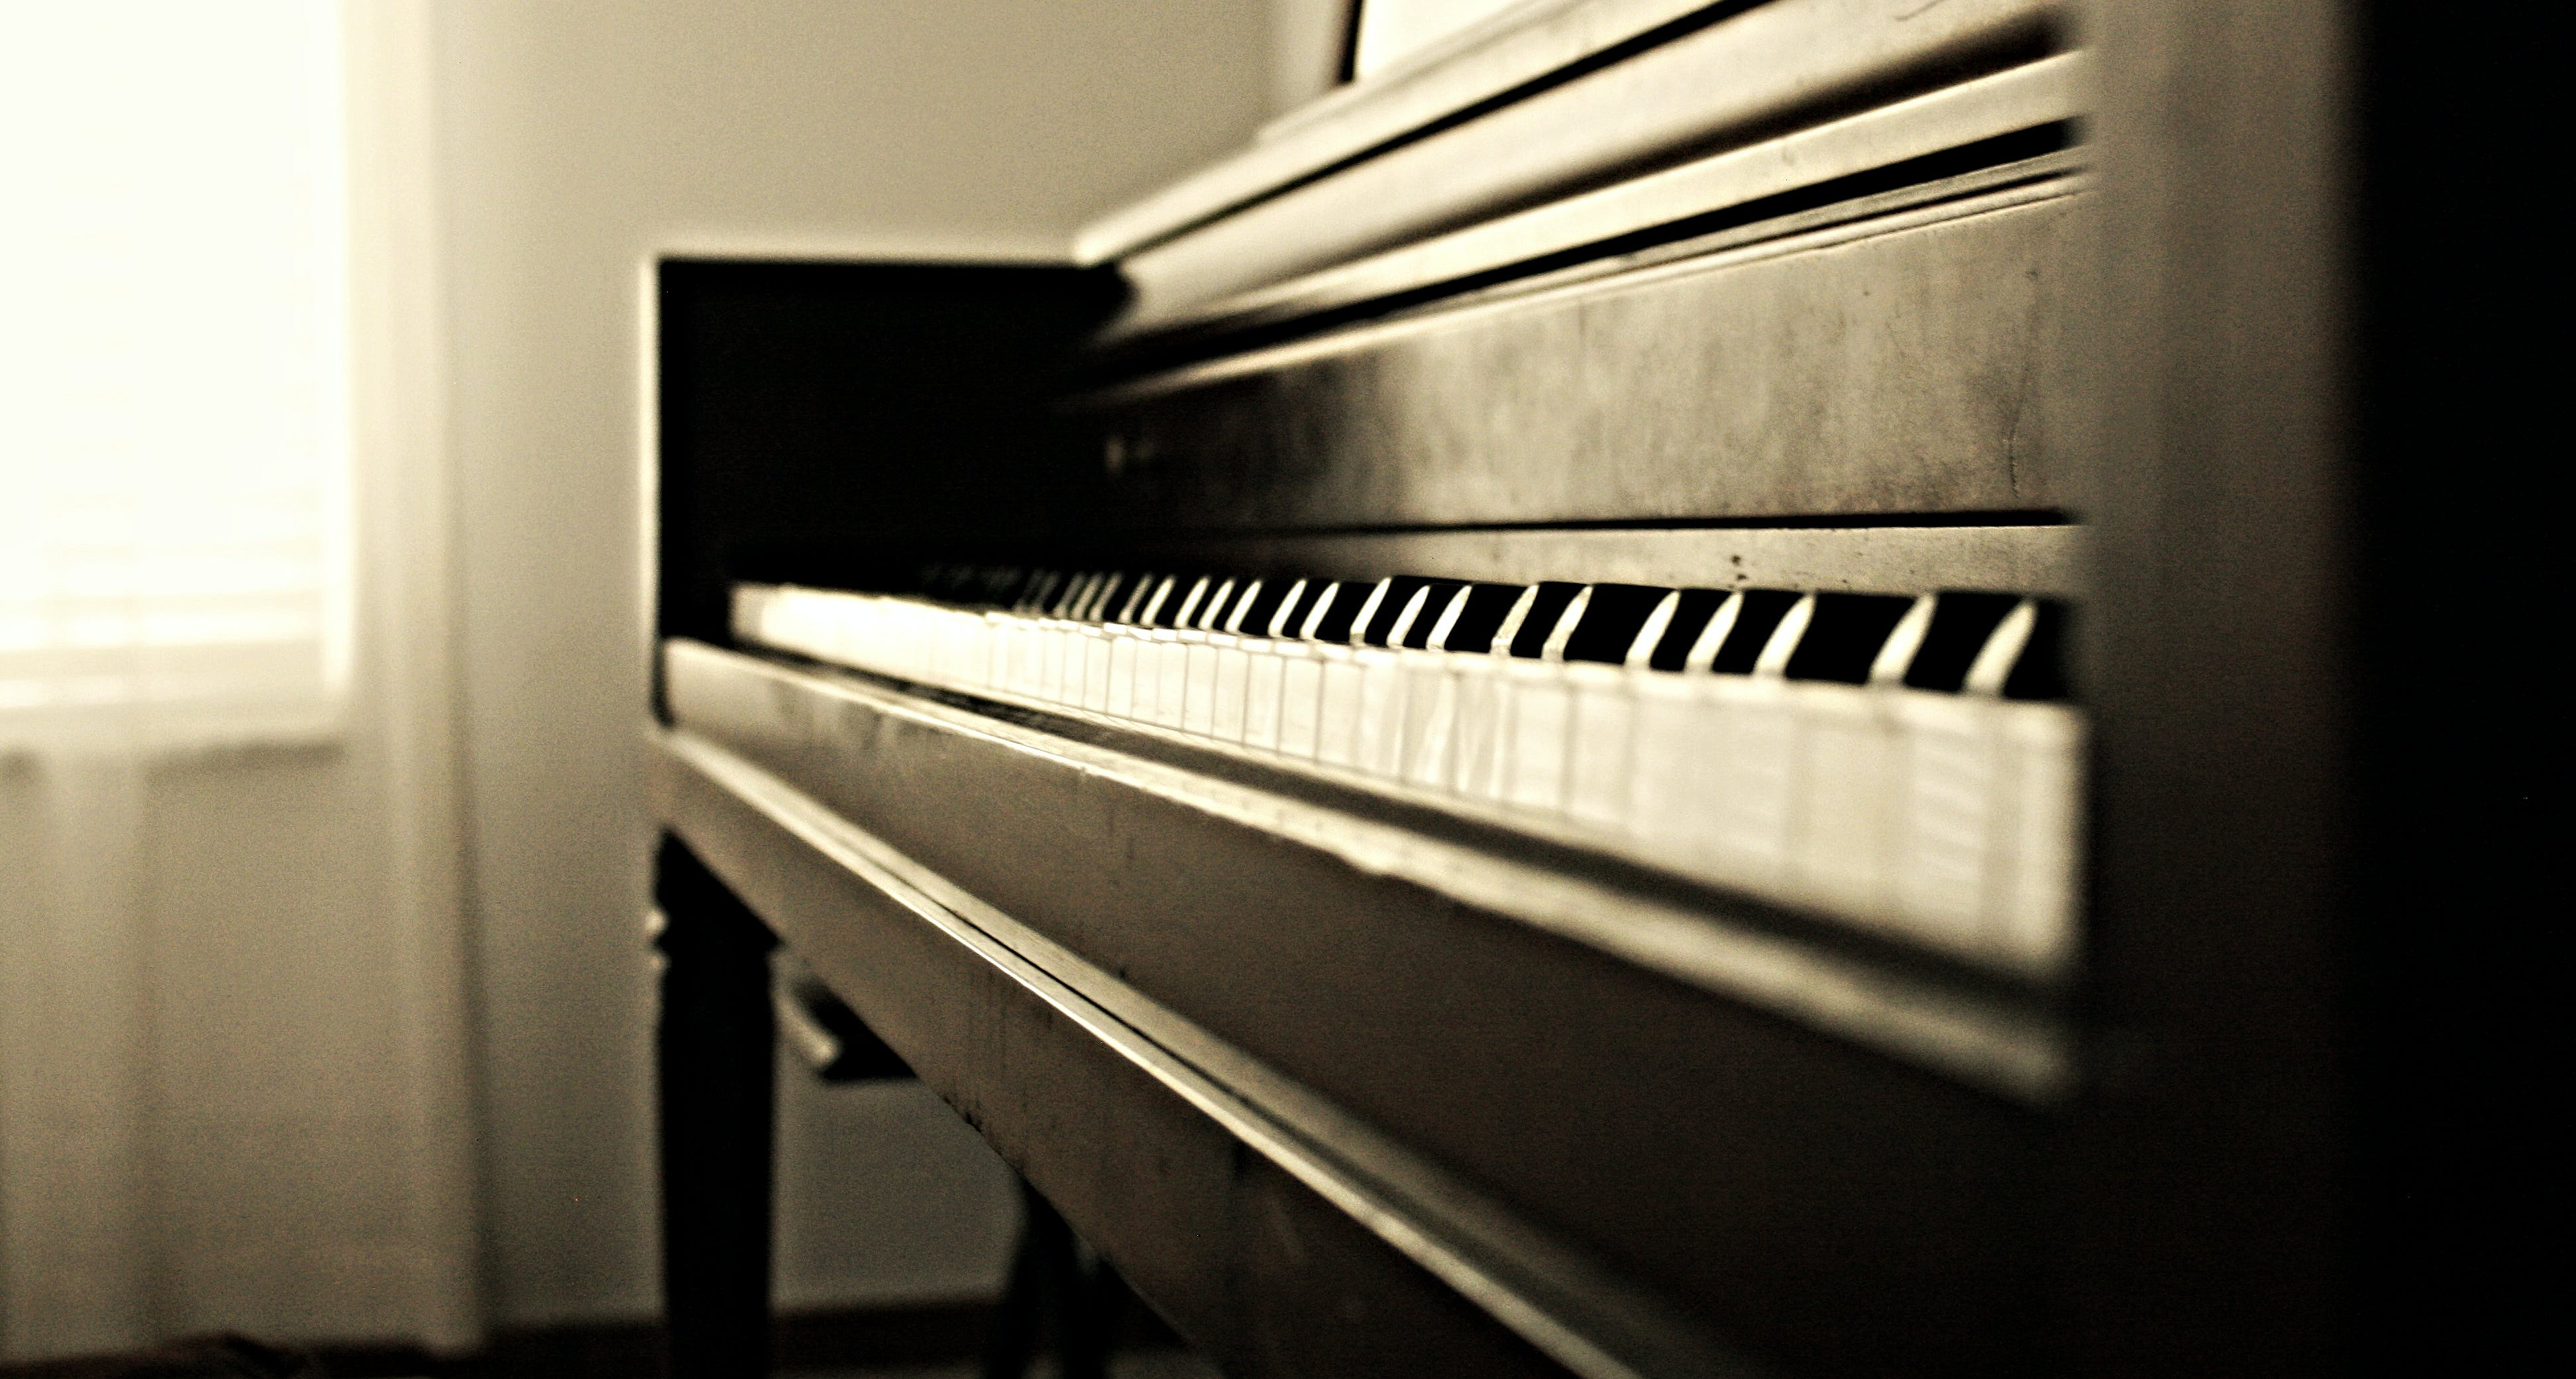 Free stock photo of piano, musical instrument, sepia, monochrome